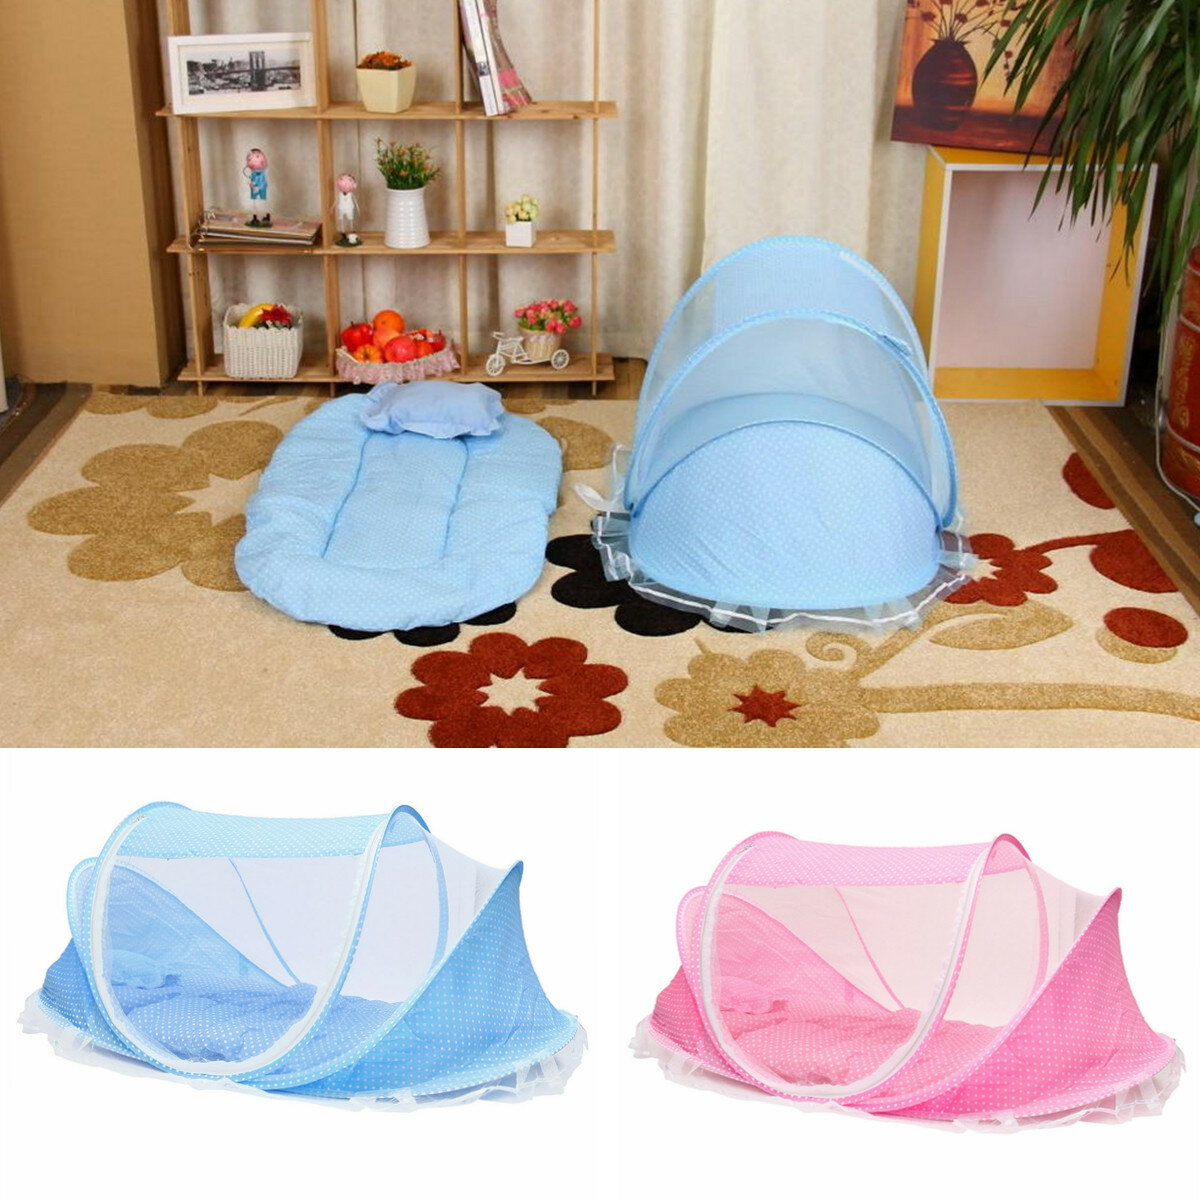 baby infant portable folding travel bed crib canopy mosquito net tent Sale - Banggood.com & baby infant portable folding travel bed crib canopy mosquito net ...